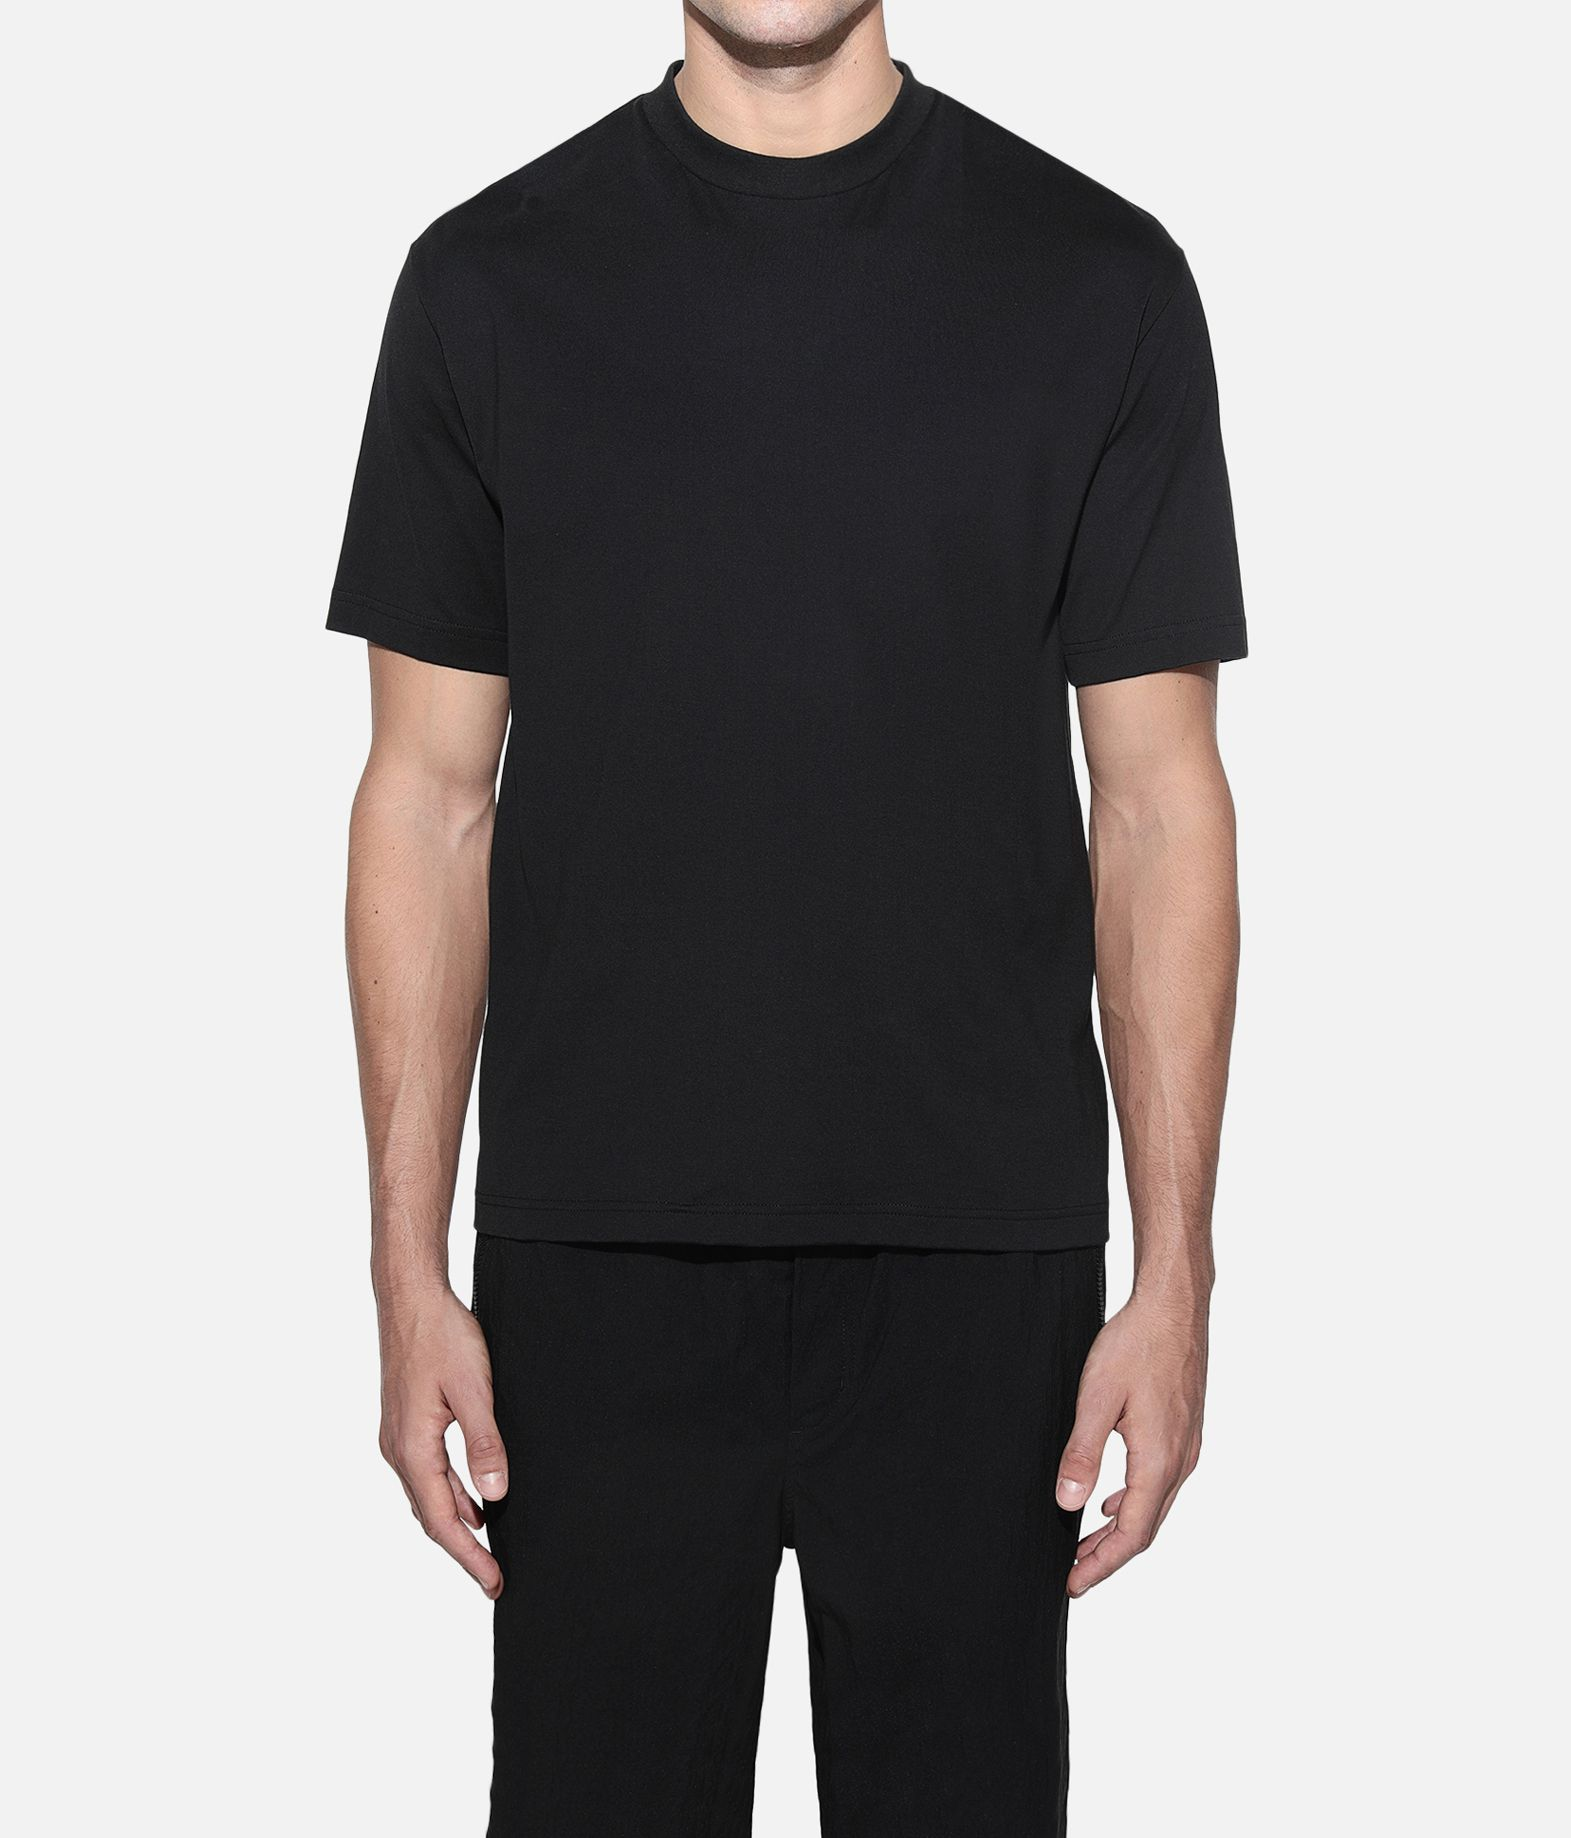 Y-3 Y-3 Signature Graphic Tee Kurzärmliges T-shirt Herren r